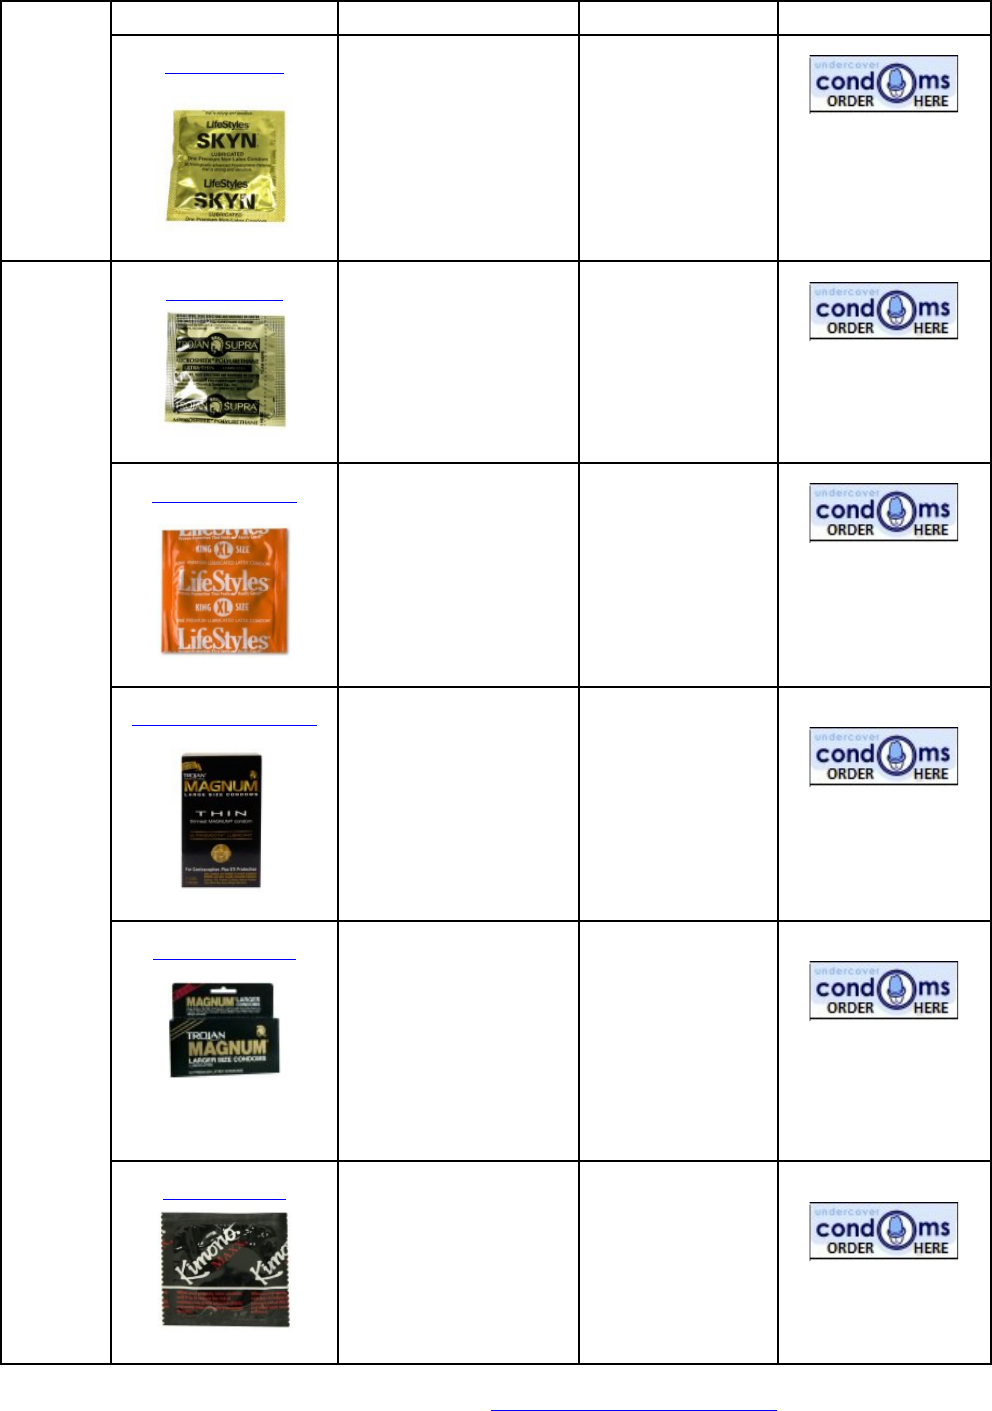 Download condom size chart 1 for free page 4 tidyform condom size chart 1 sciox Images